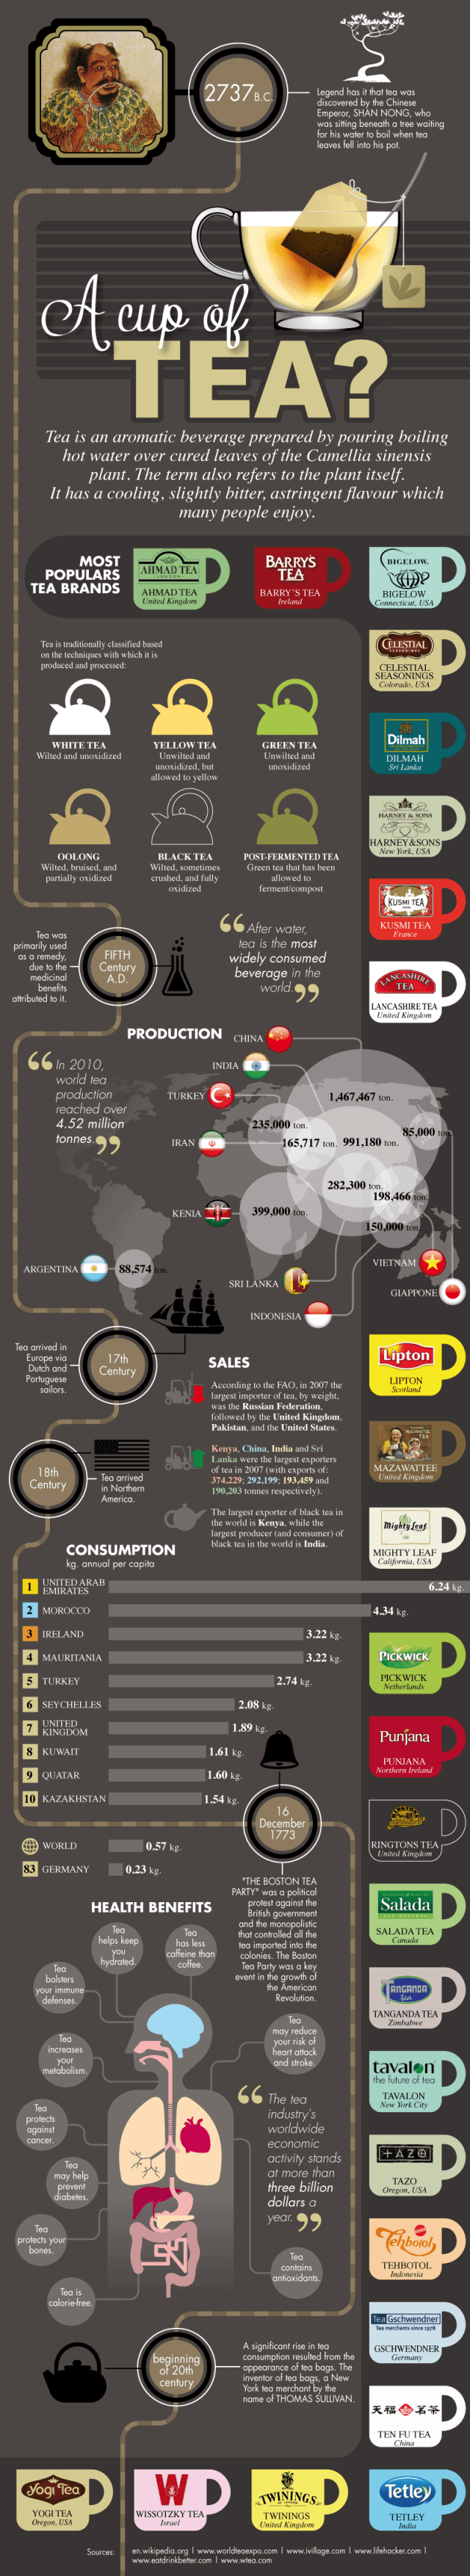 Story of Tea Infographic